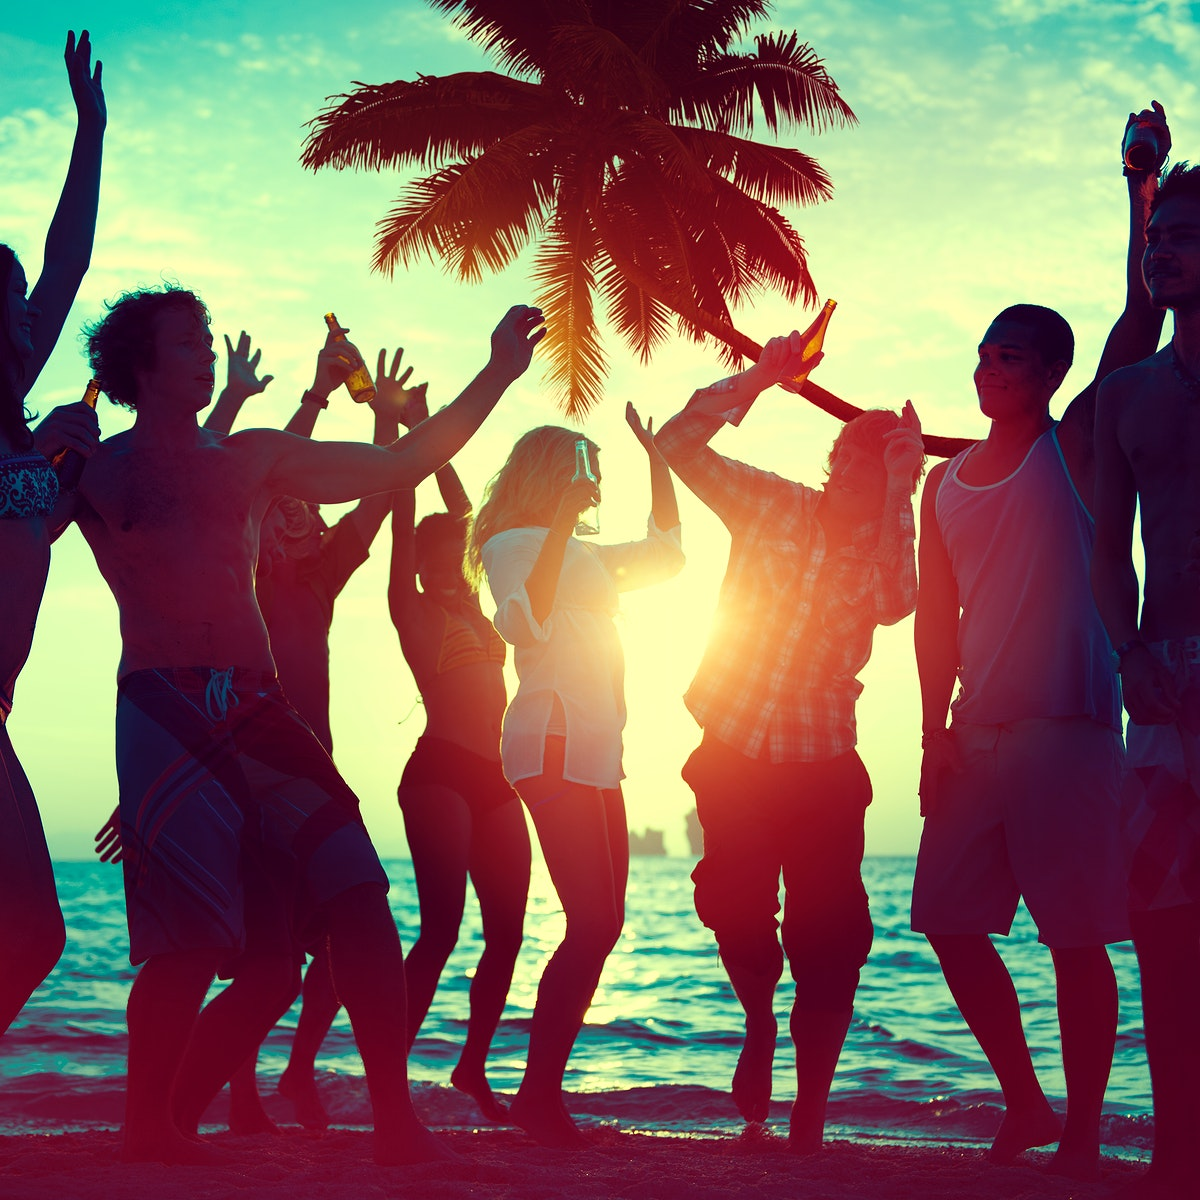 A group of diverse people is having fun at the beach